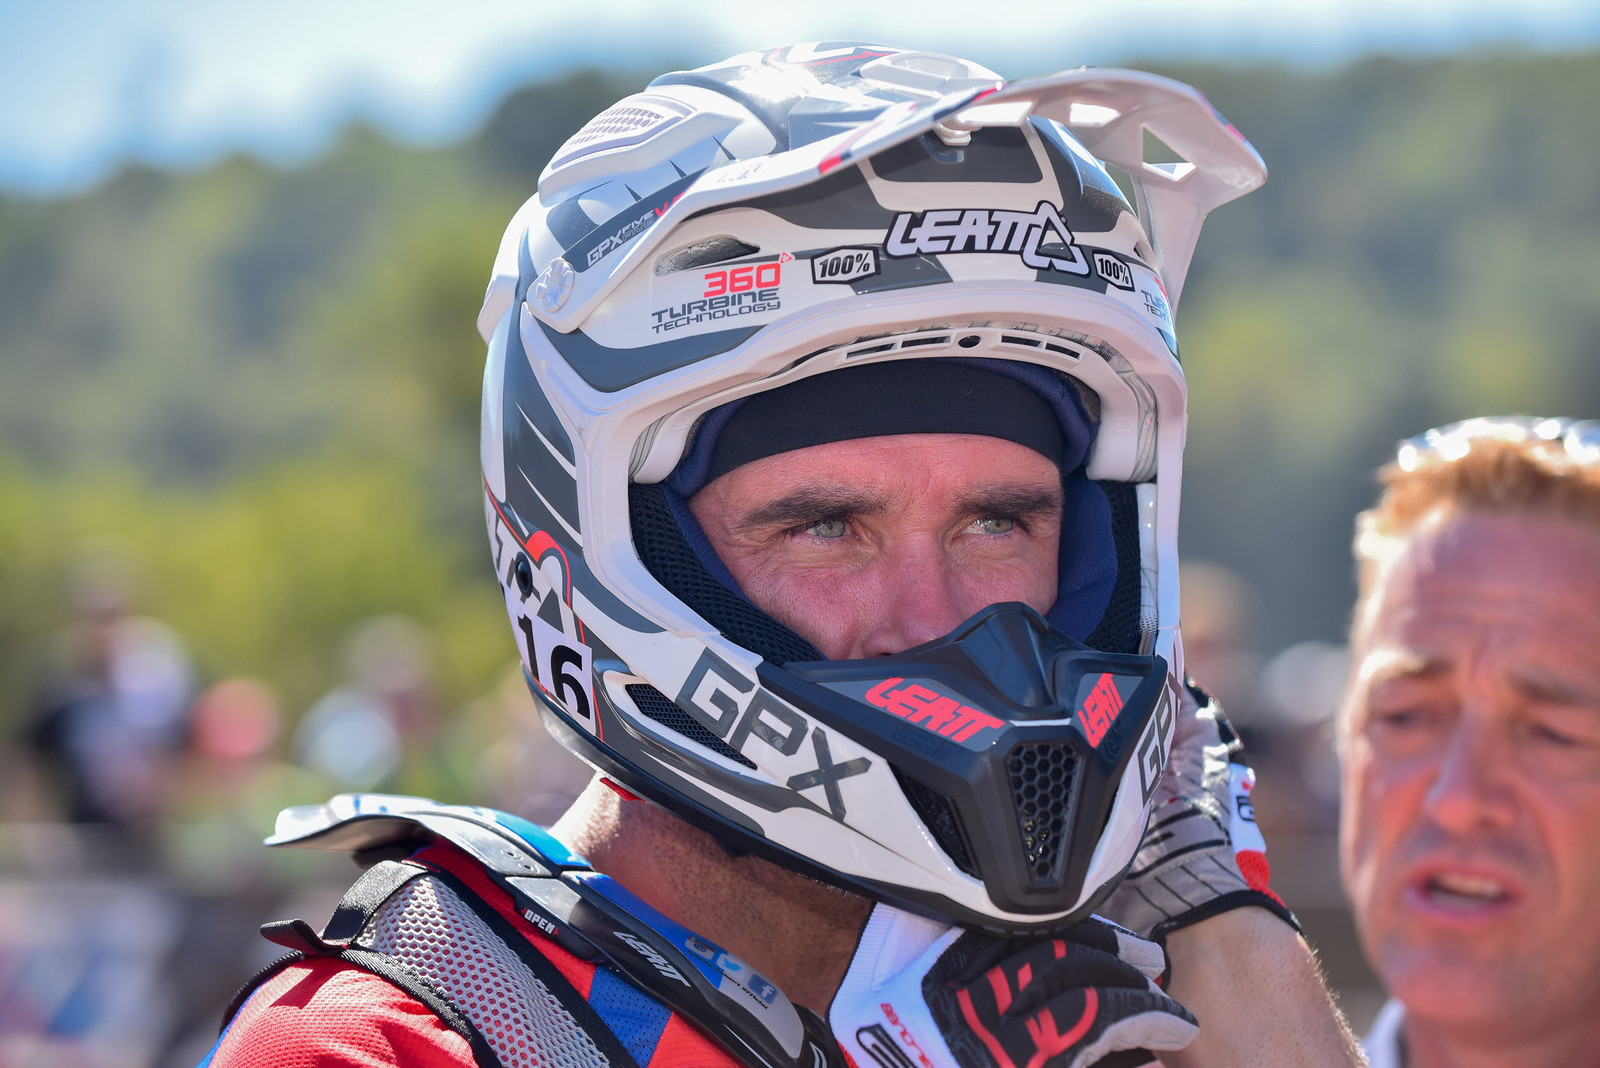 Mountaineer GNCC Photo Gallery, and Johnny Aubert - Mountaineer Run GNCC - Motocross Pictures - Vital MX